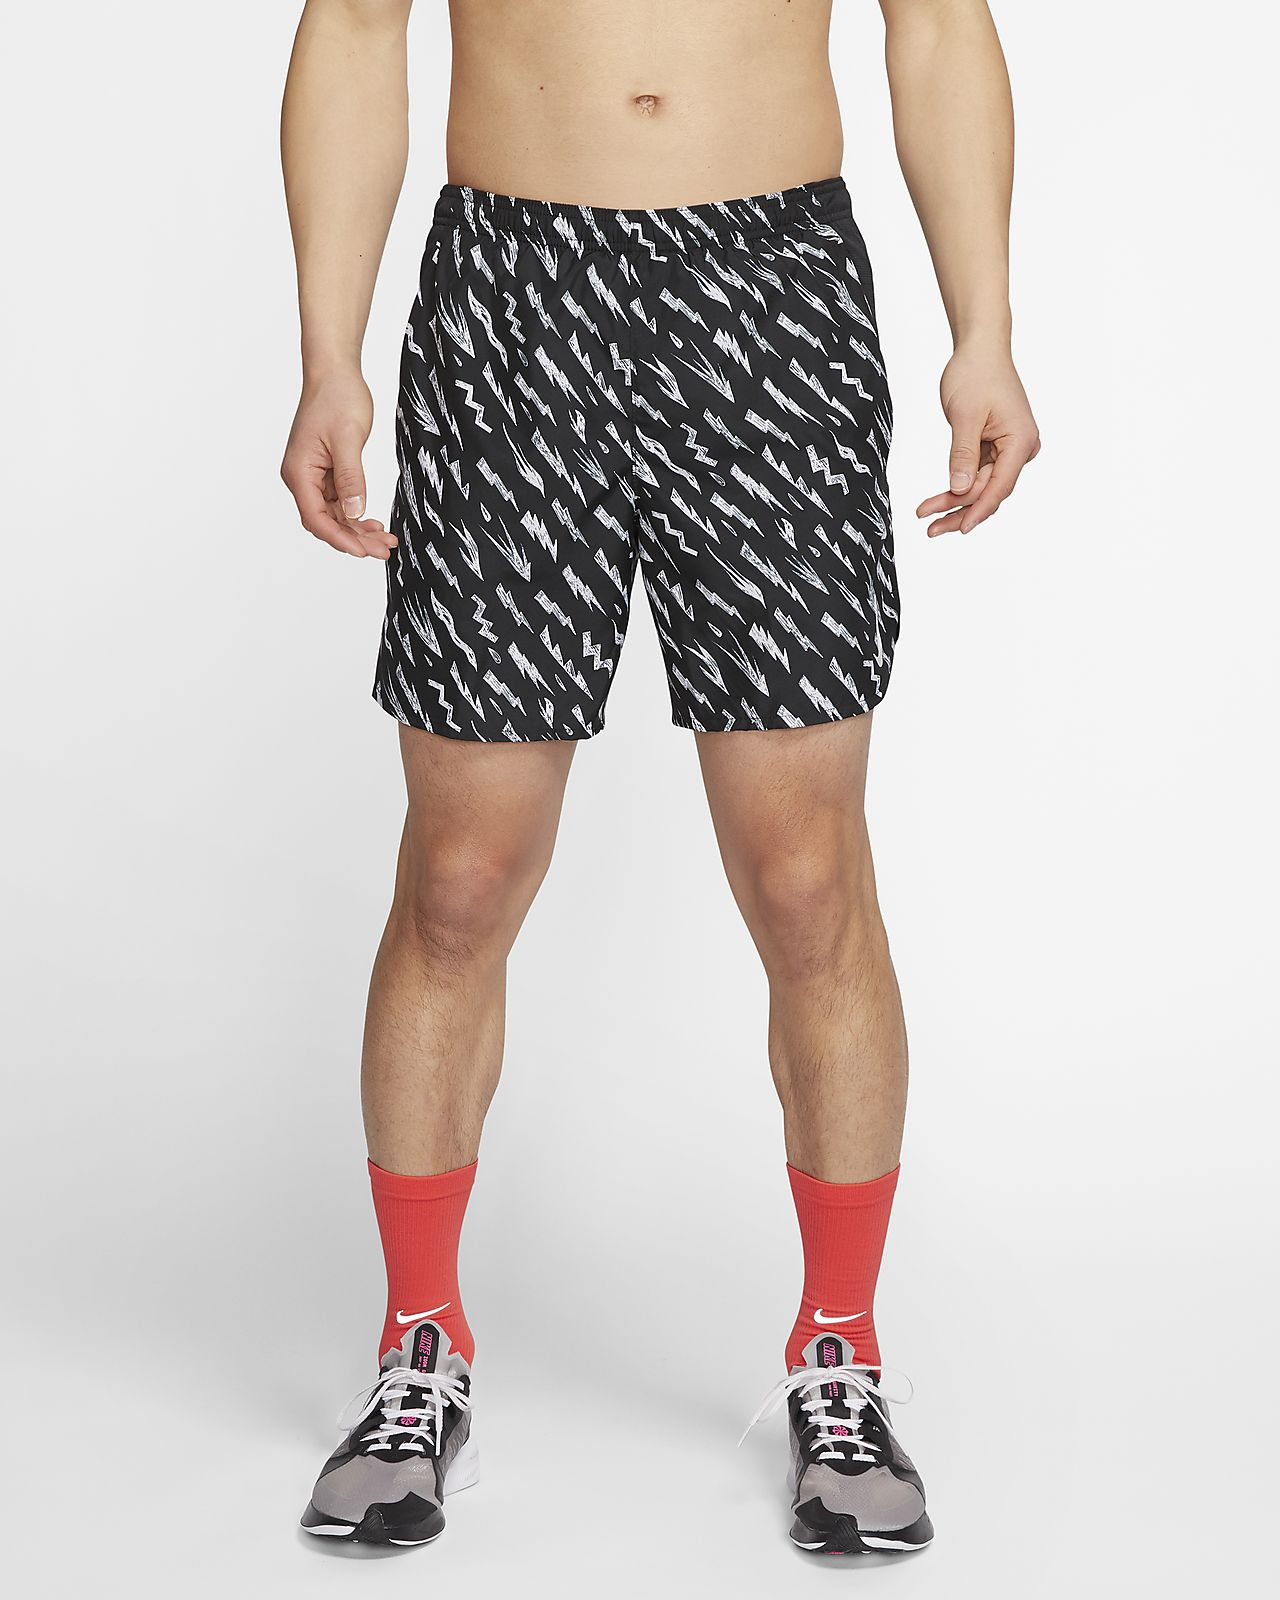 Nike Challenger Men's 18cm (approx.) Running Shorts